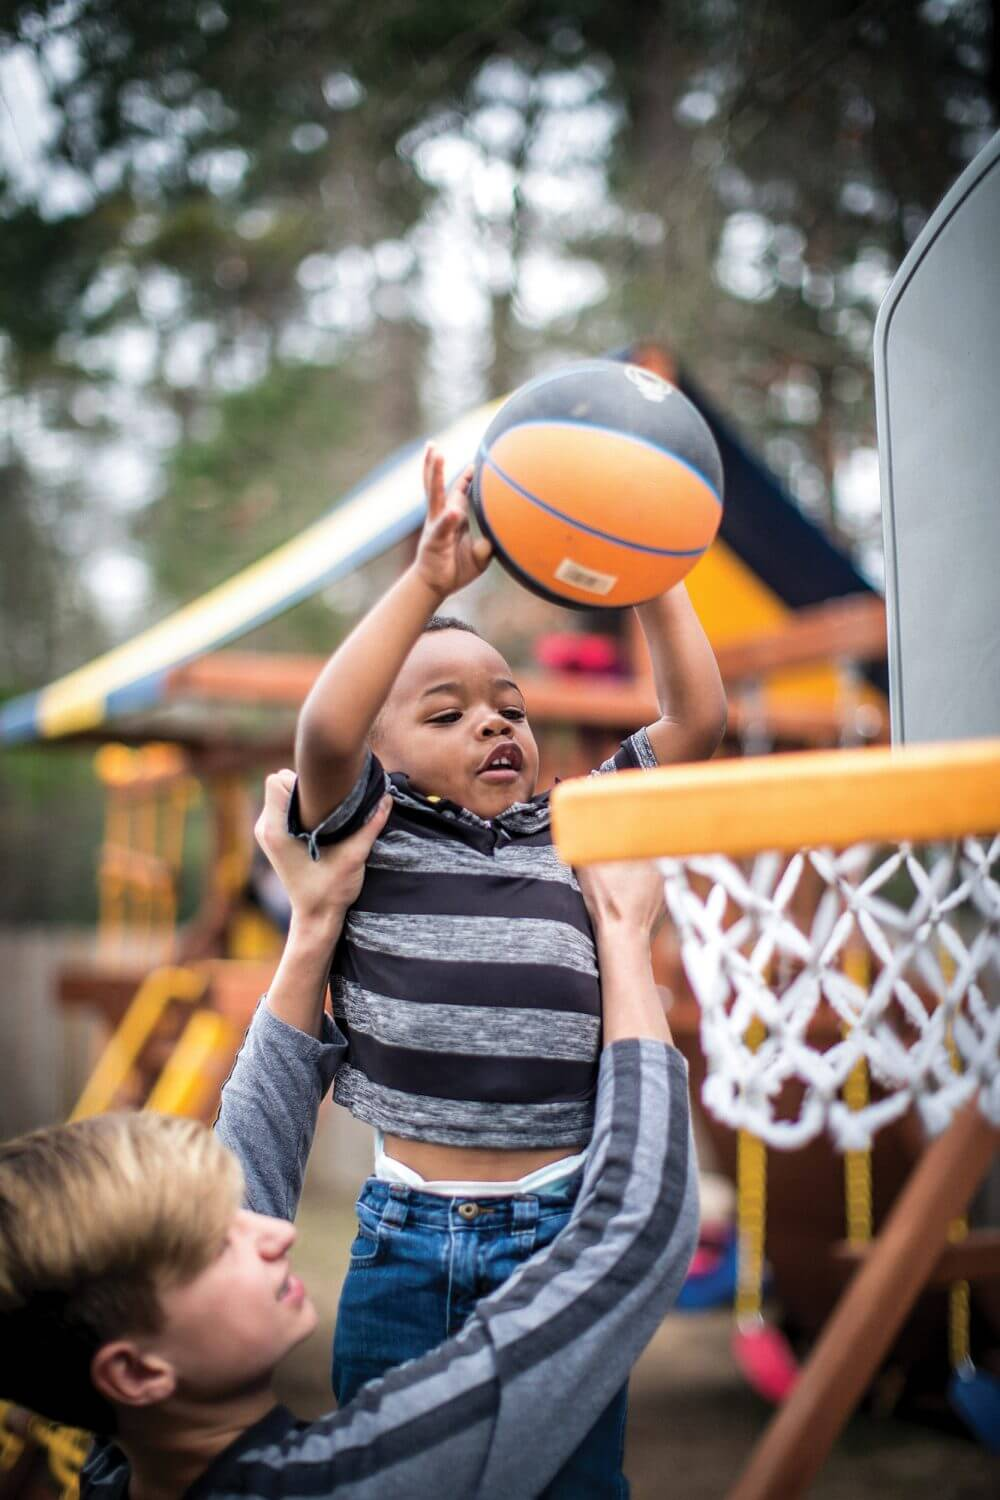 Christi Fisher's biological son, Karsen, helps his brother, Kyron, dunk a basketball. Kyron is one of four children Christi adopted through DePelchin Children's Center (Photo credit: Nick de la Torre).